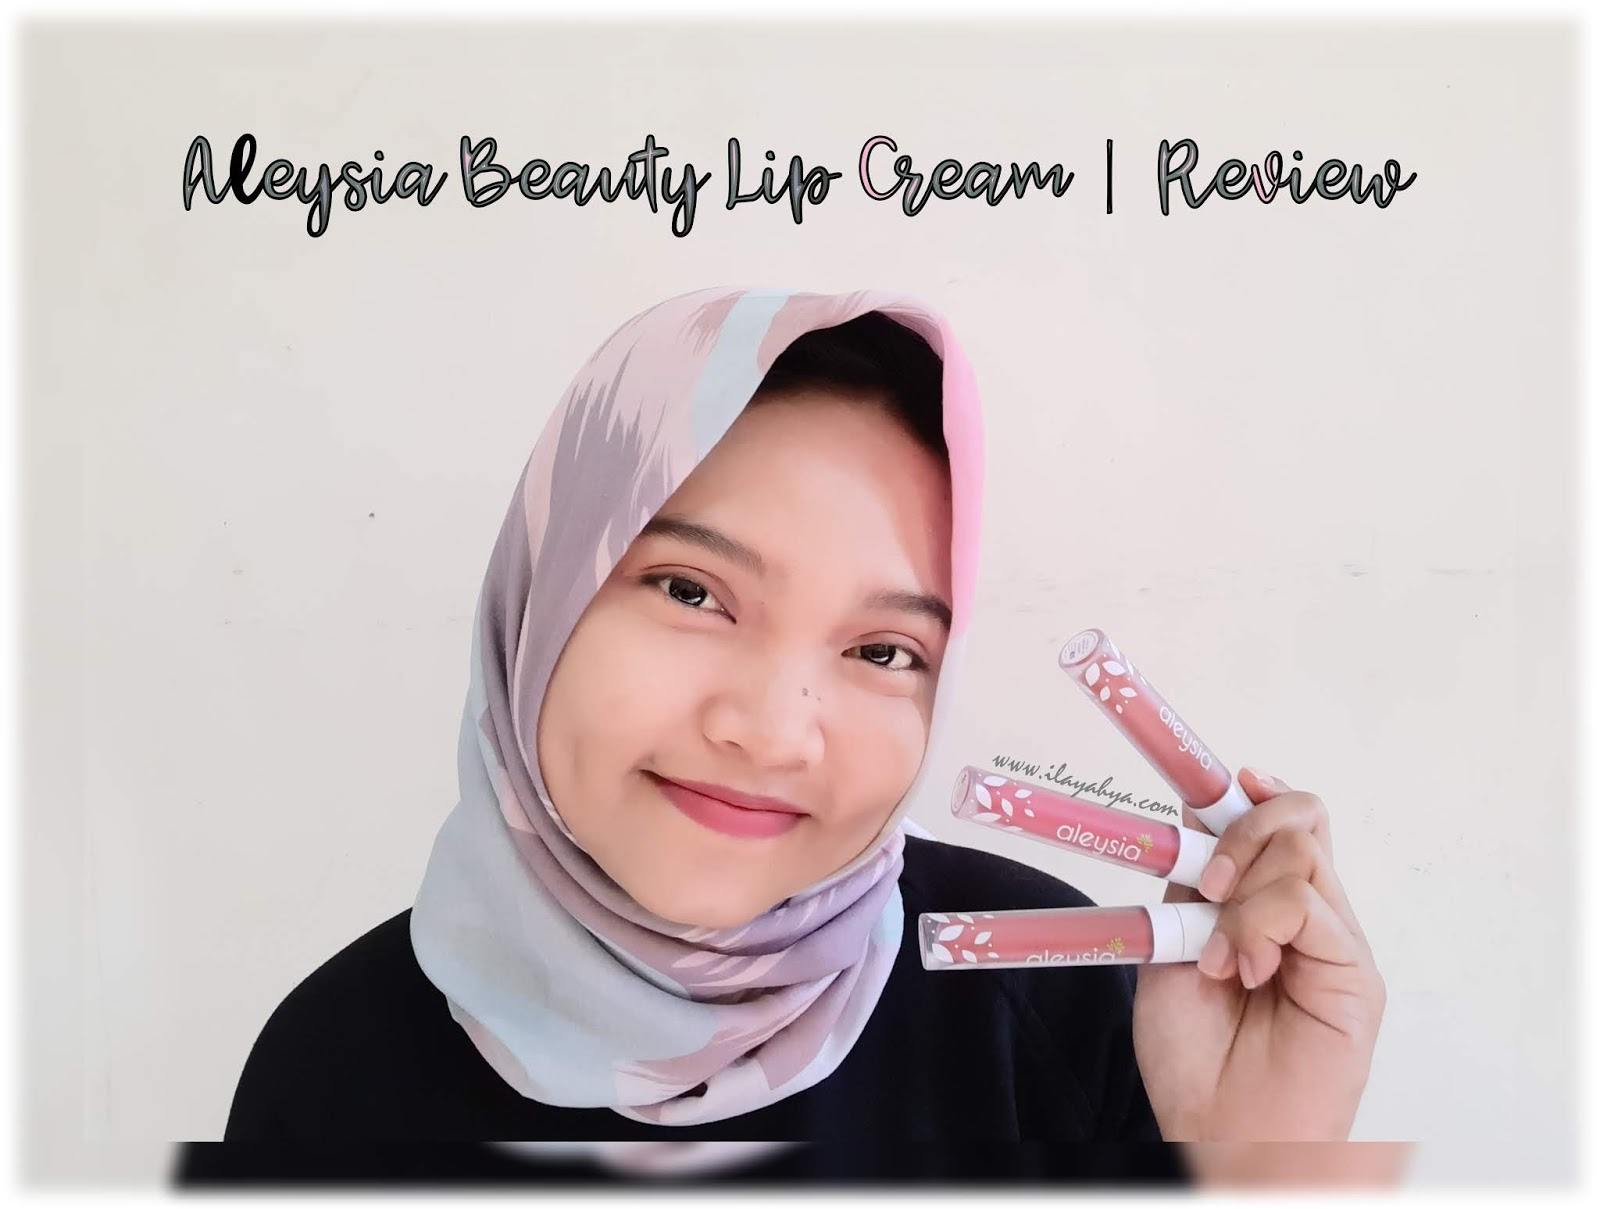 Aleysia Beauty Lip Cream | Review